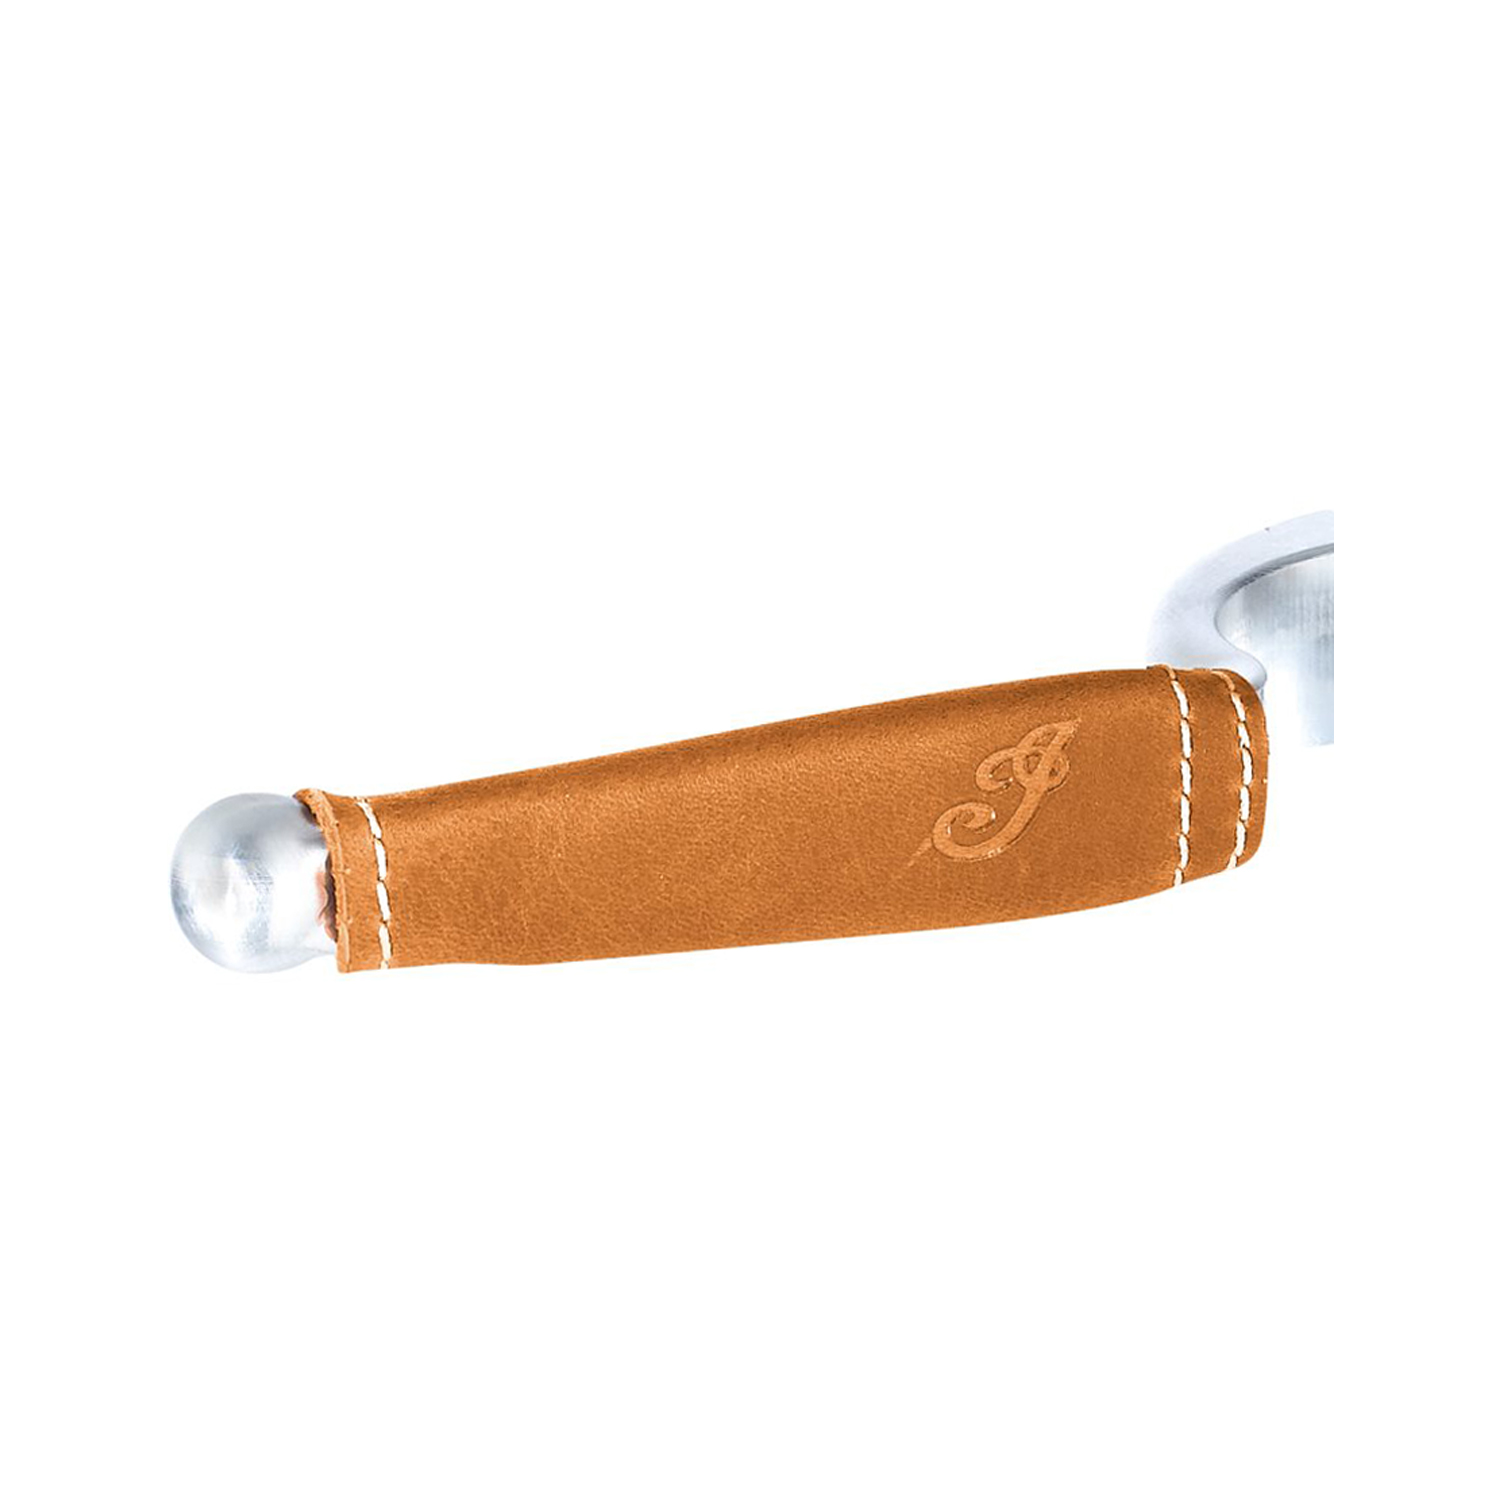 Genuine Leather Lever Wraps - Desert Tan